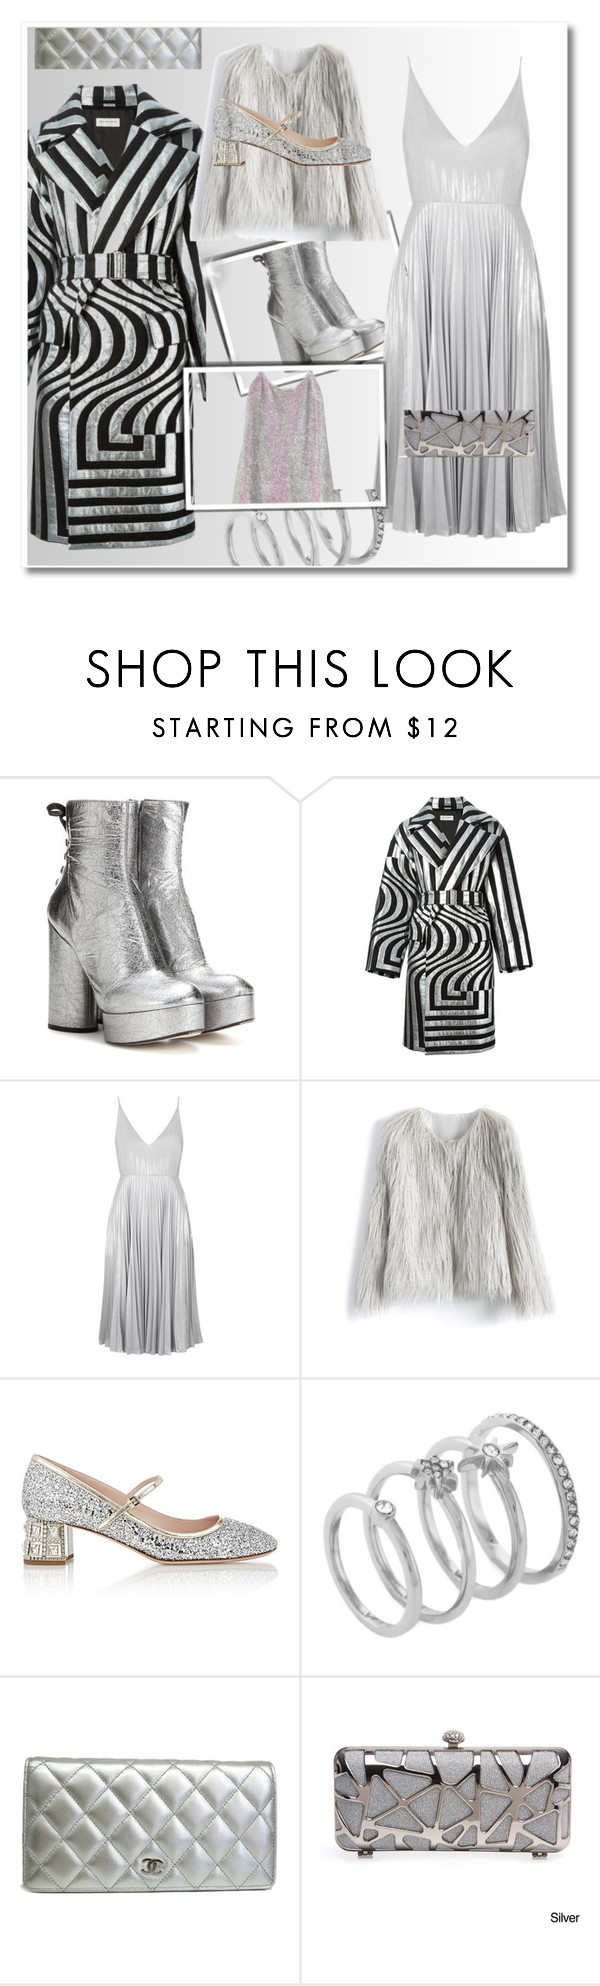 """Flint"" by prettymental ❤ liked on Polyvore featuring Marc Jacobs, Dries Van Noten, Topshop, Chicwish, Miu Miu, Vince Camuto, Chanel, Ashish, polyvoreeditorial and prettymental"